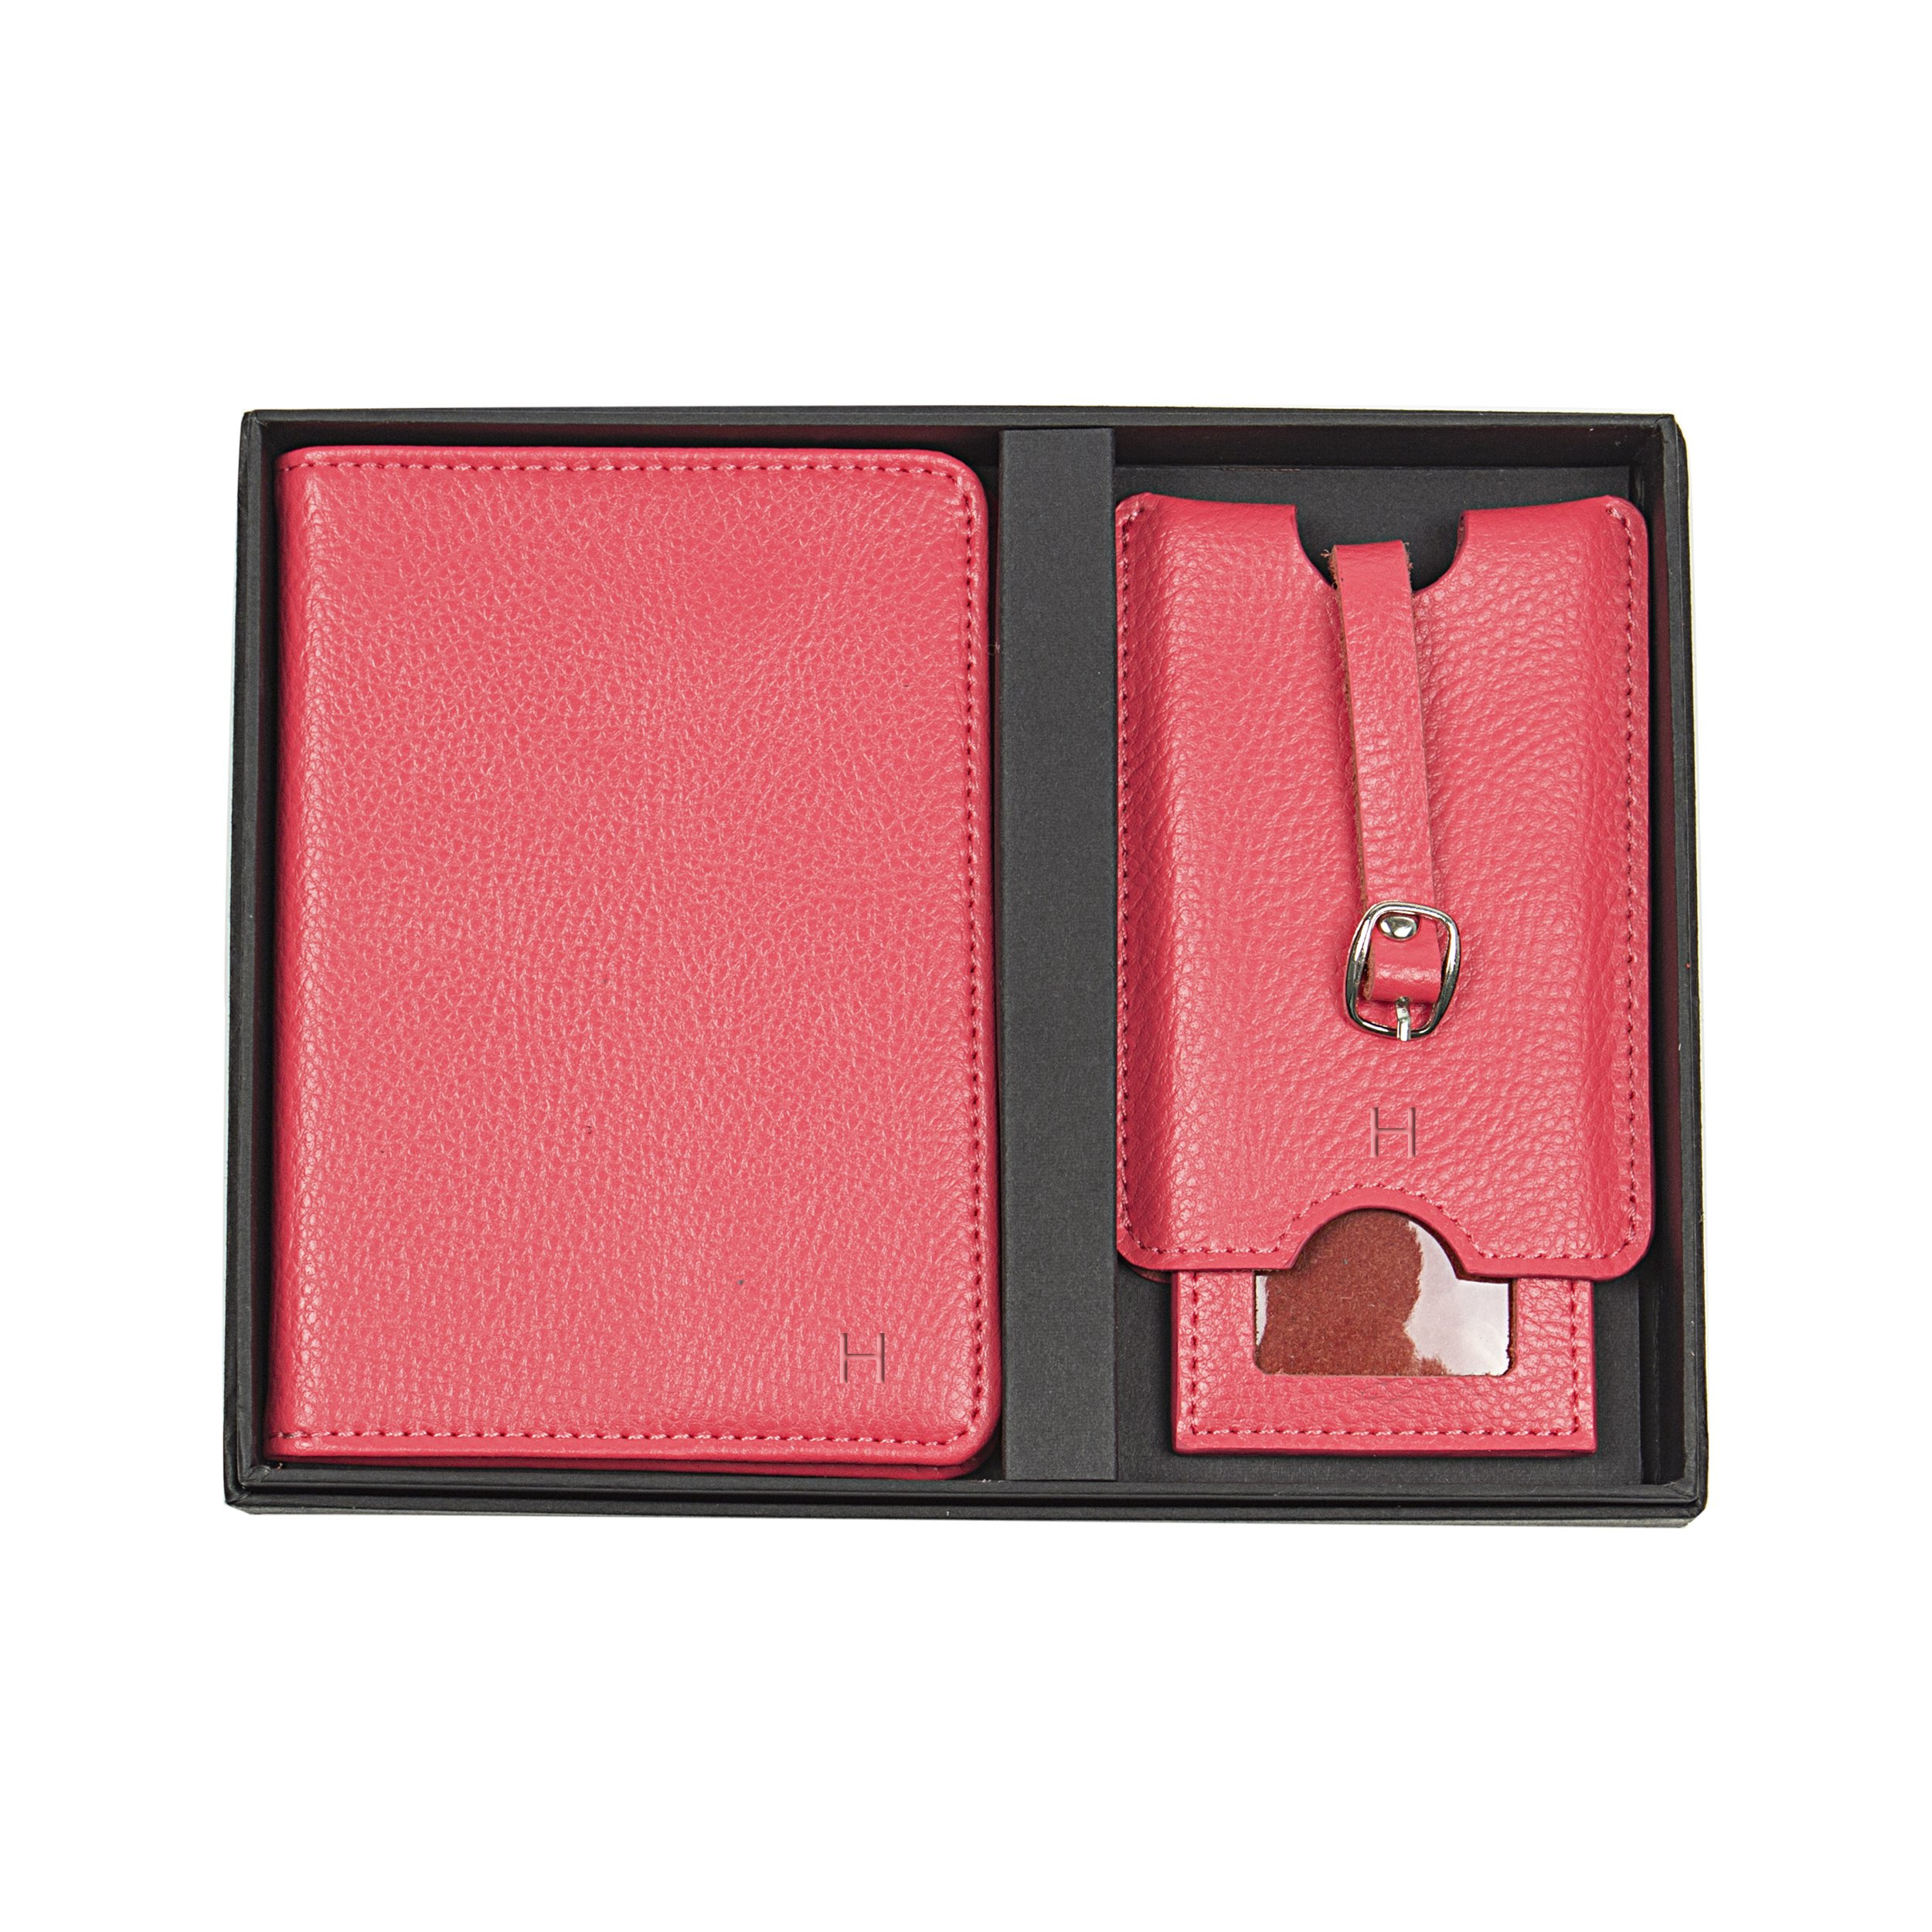 Cathy's Concepts Personalized Leather Passport Holder & Luggage Tag Set, Pink, Letter H by Cathy's Concepts